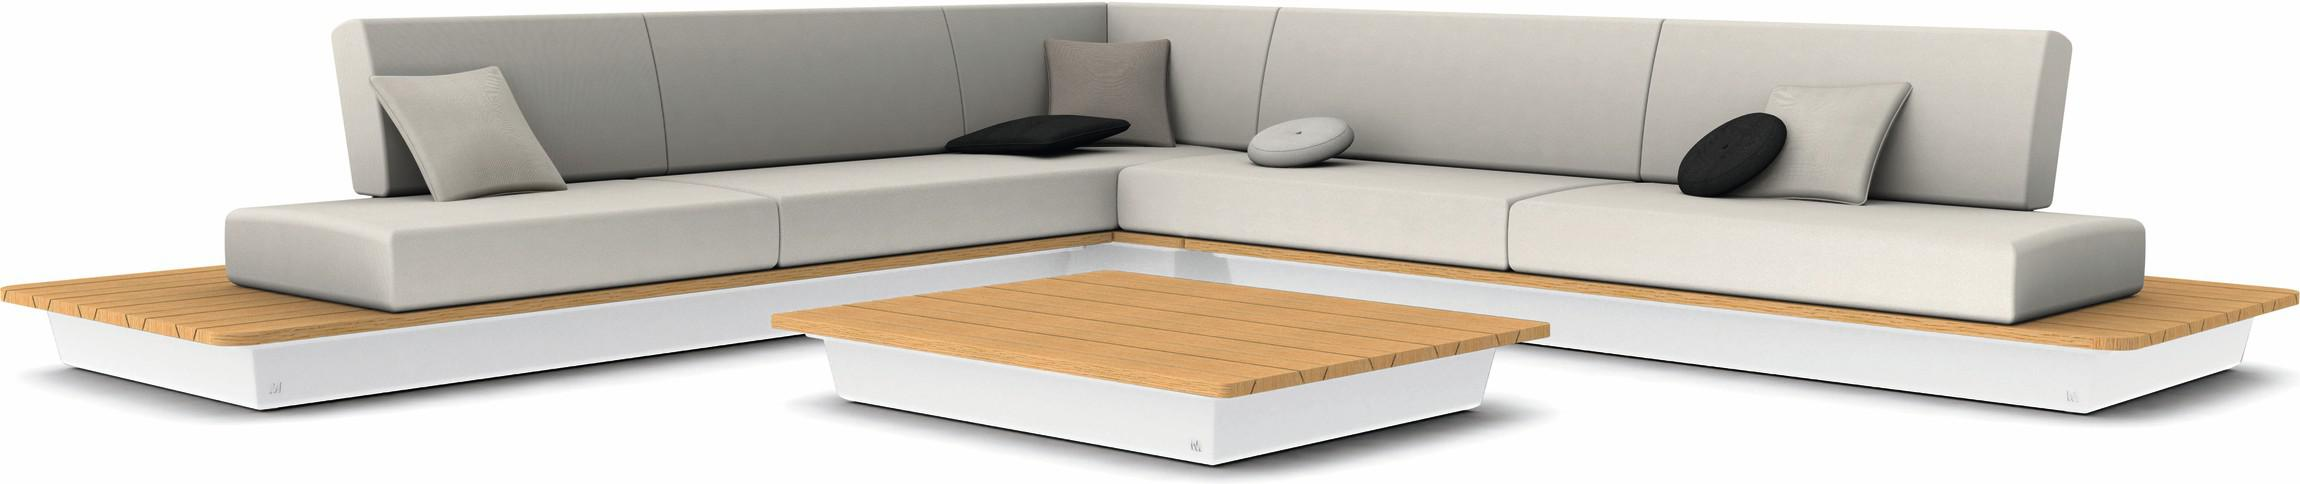 Air concept 5 - white - wood top iroko